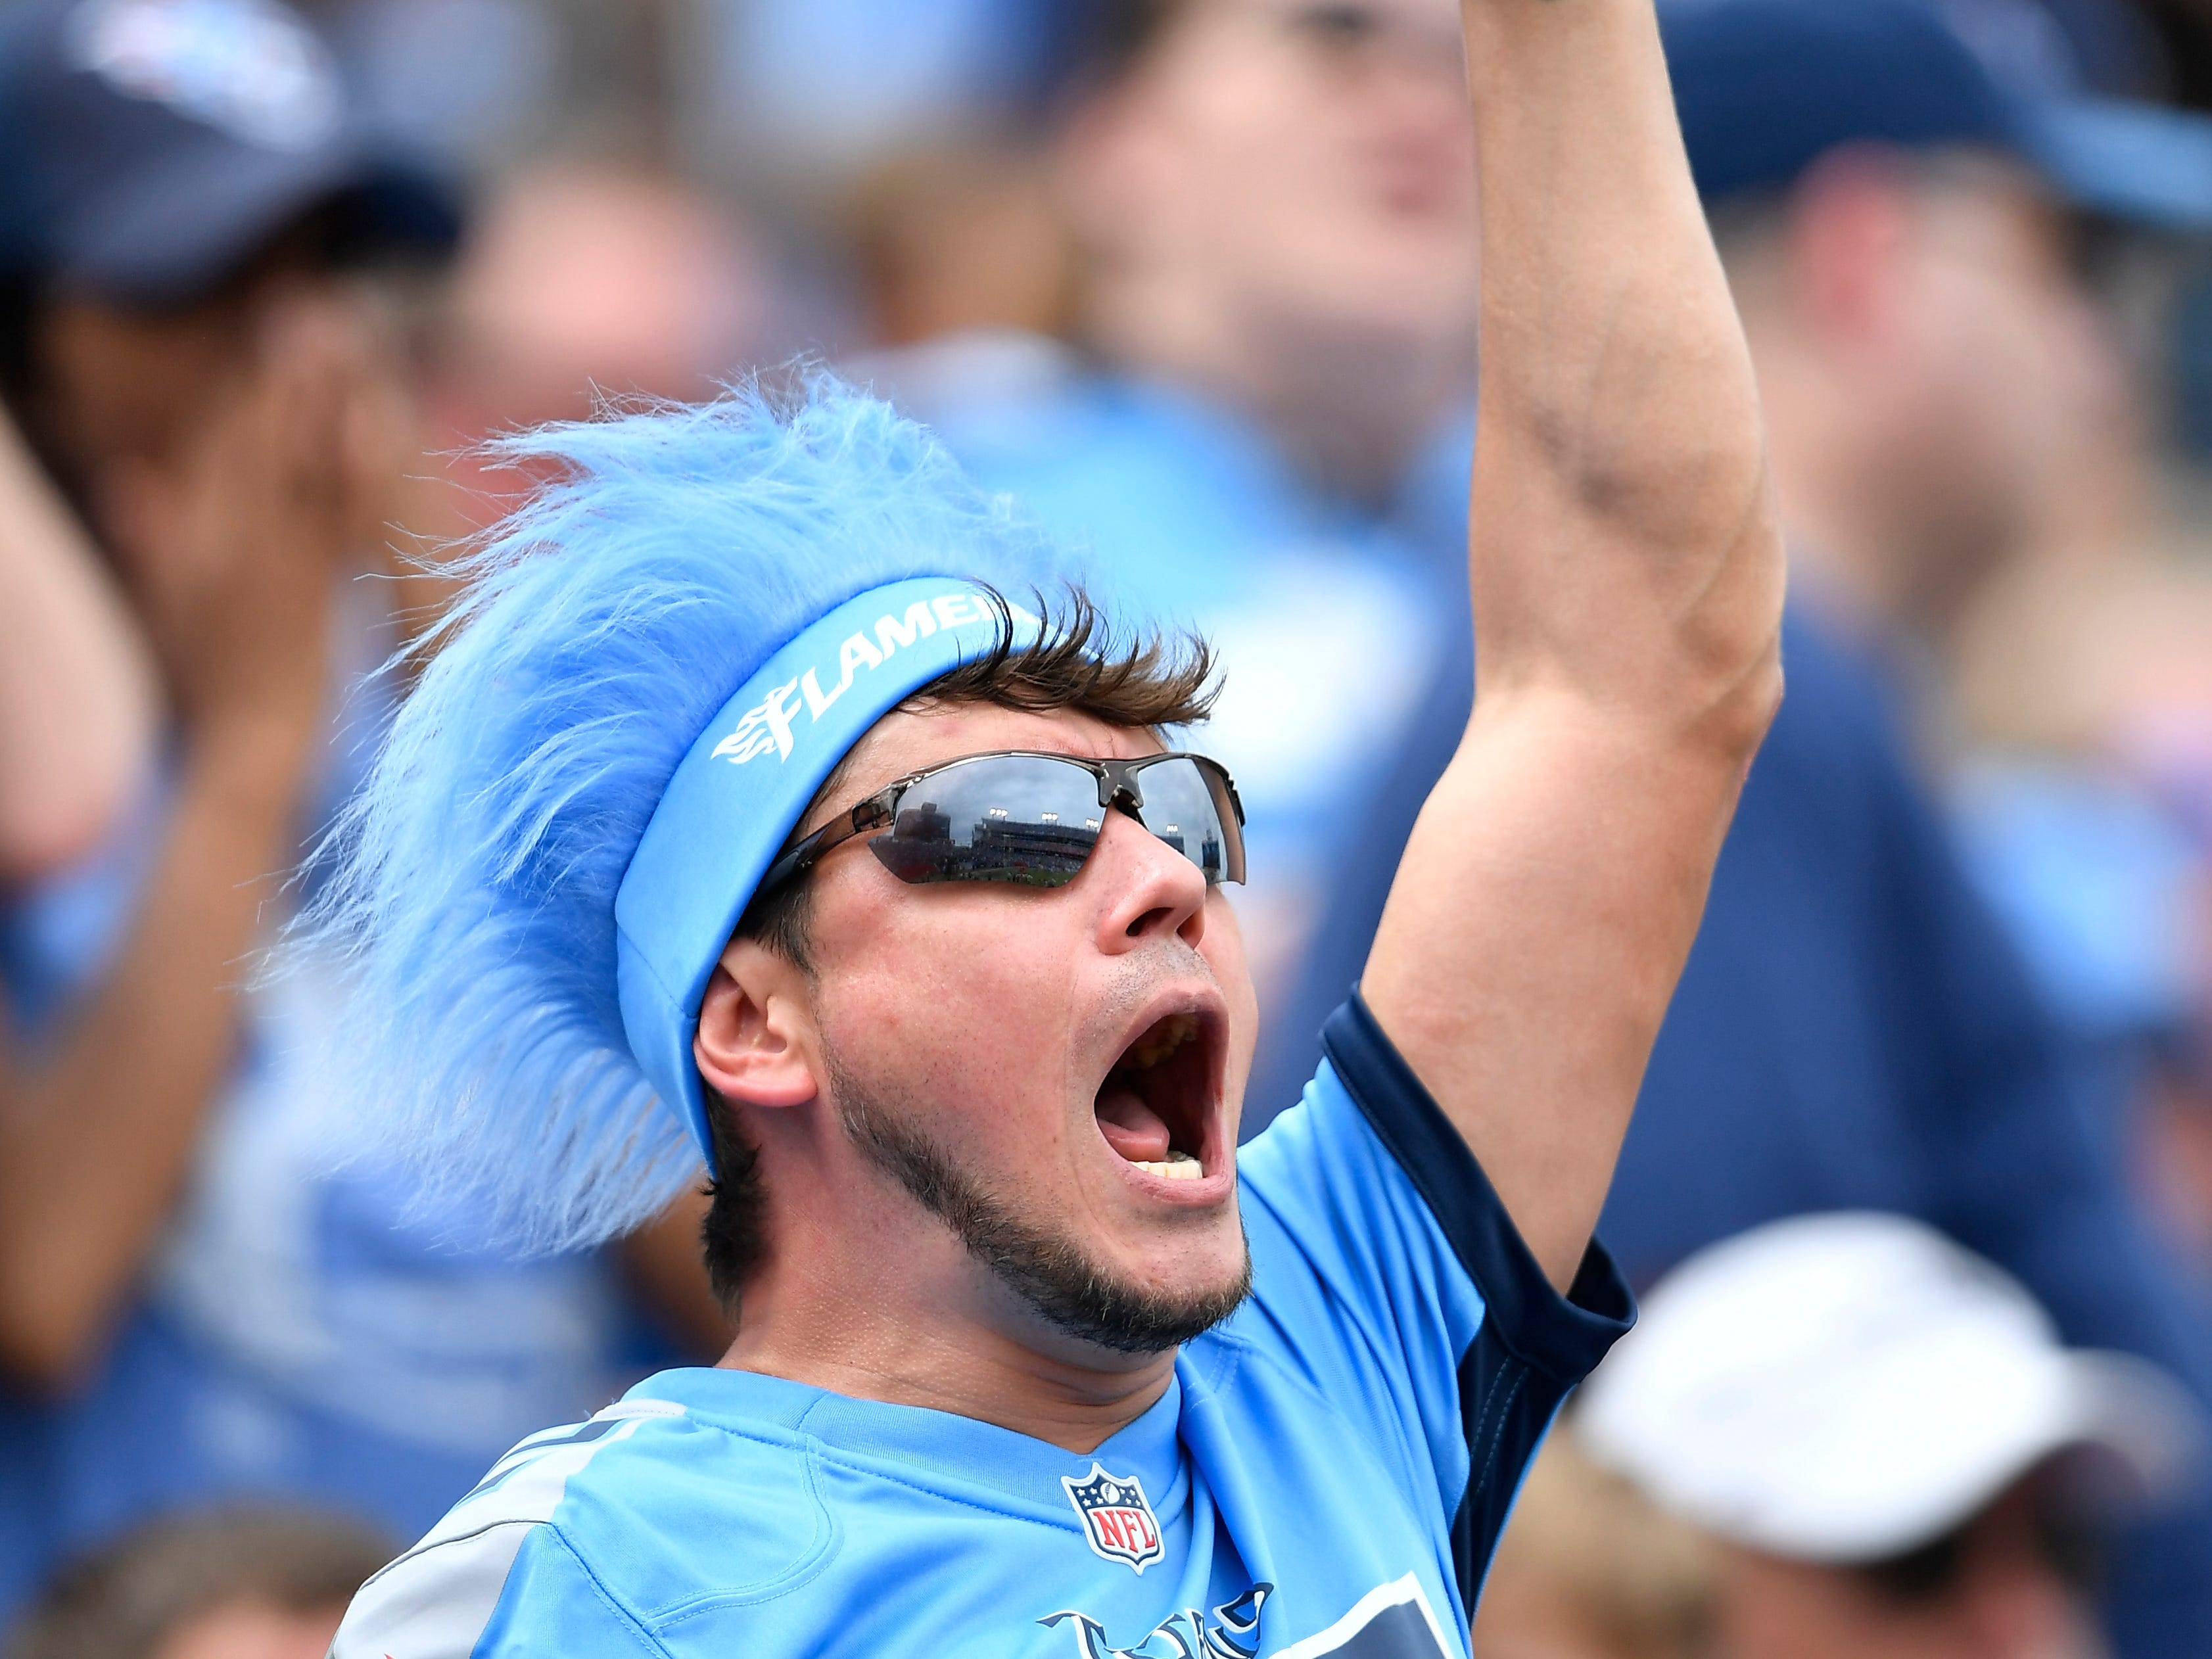 A Titans fan yells for the team at the start of the second half at Nissan Stadium Sunday, Sept. 16, 2018, in Nashville, Tenn.